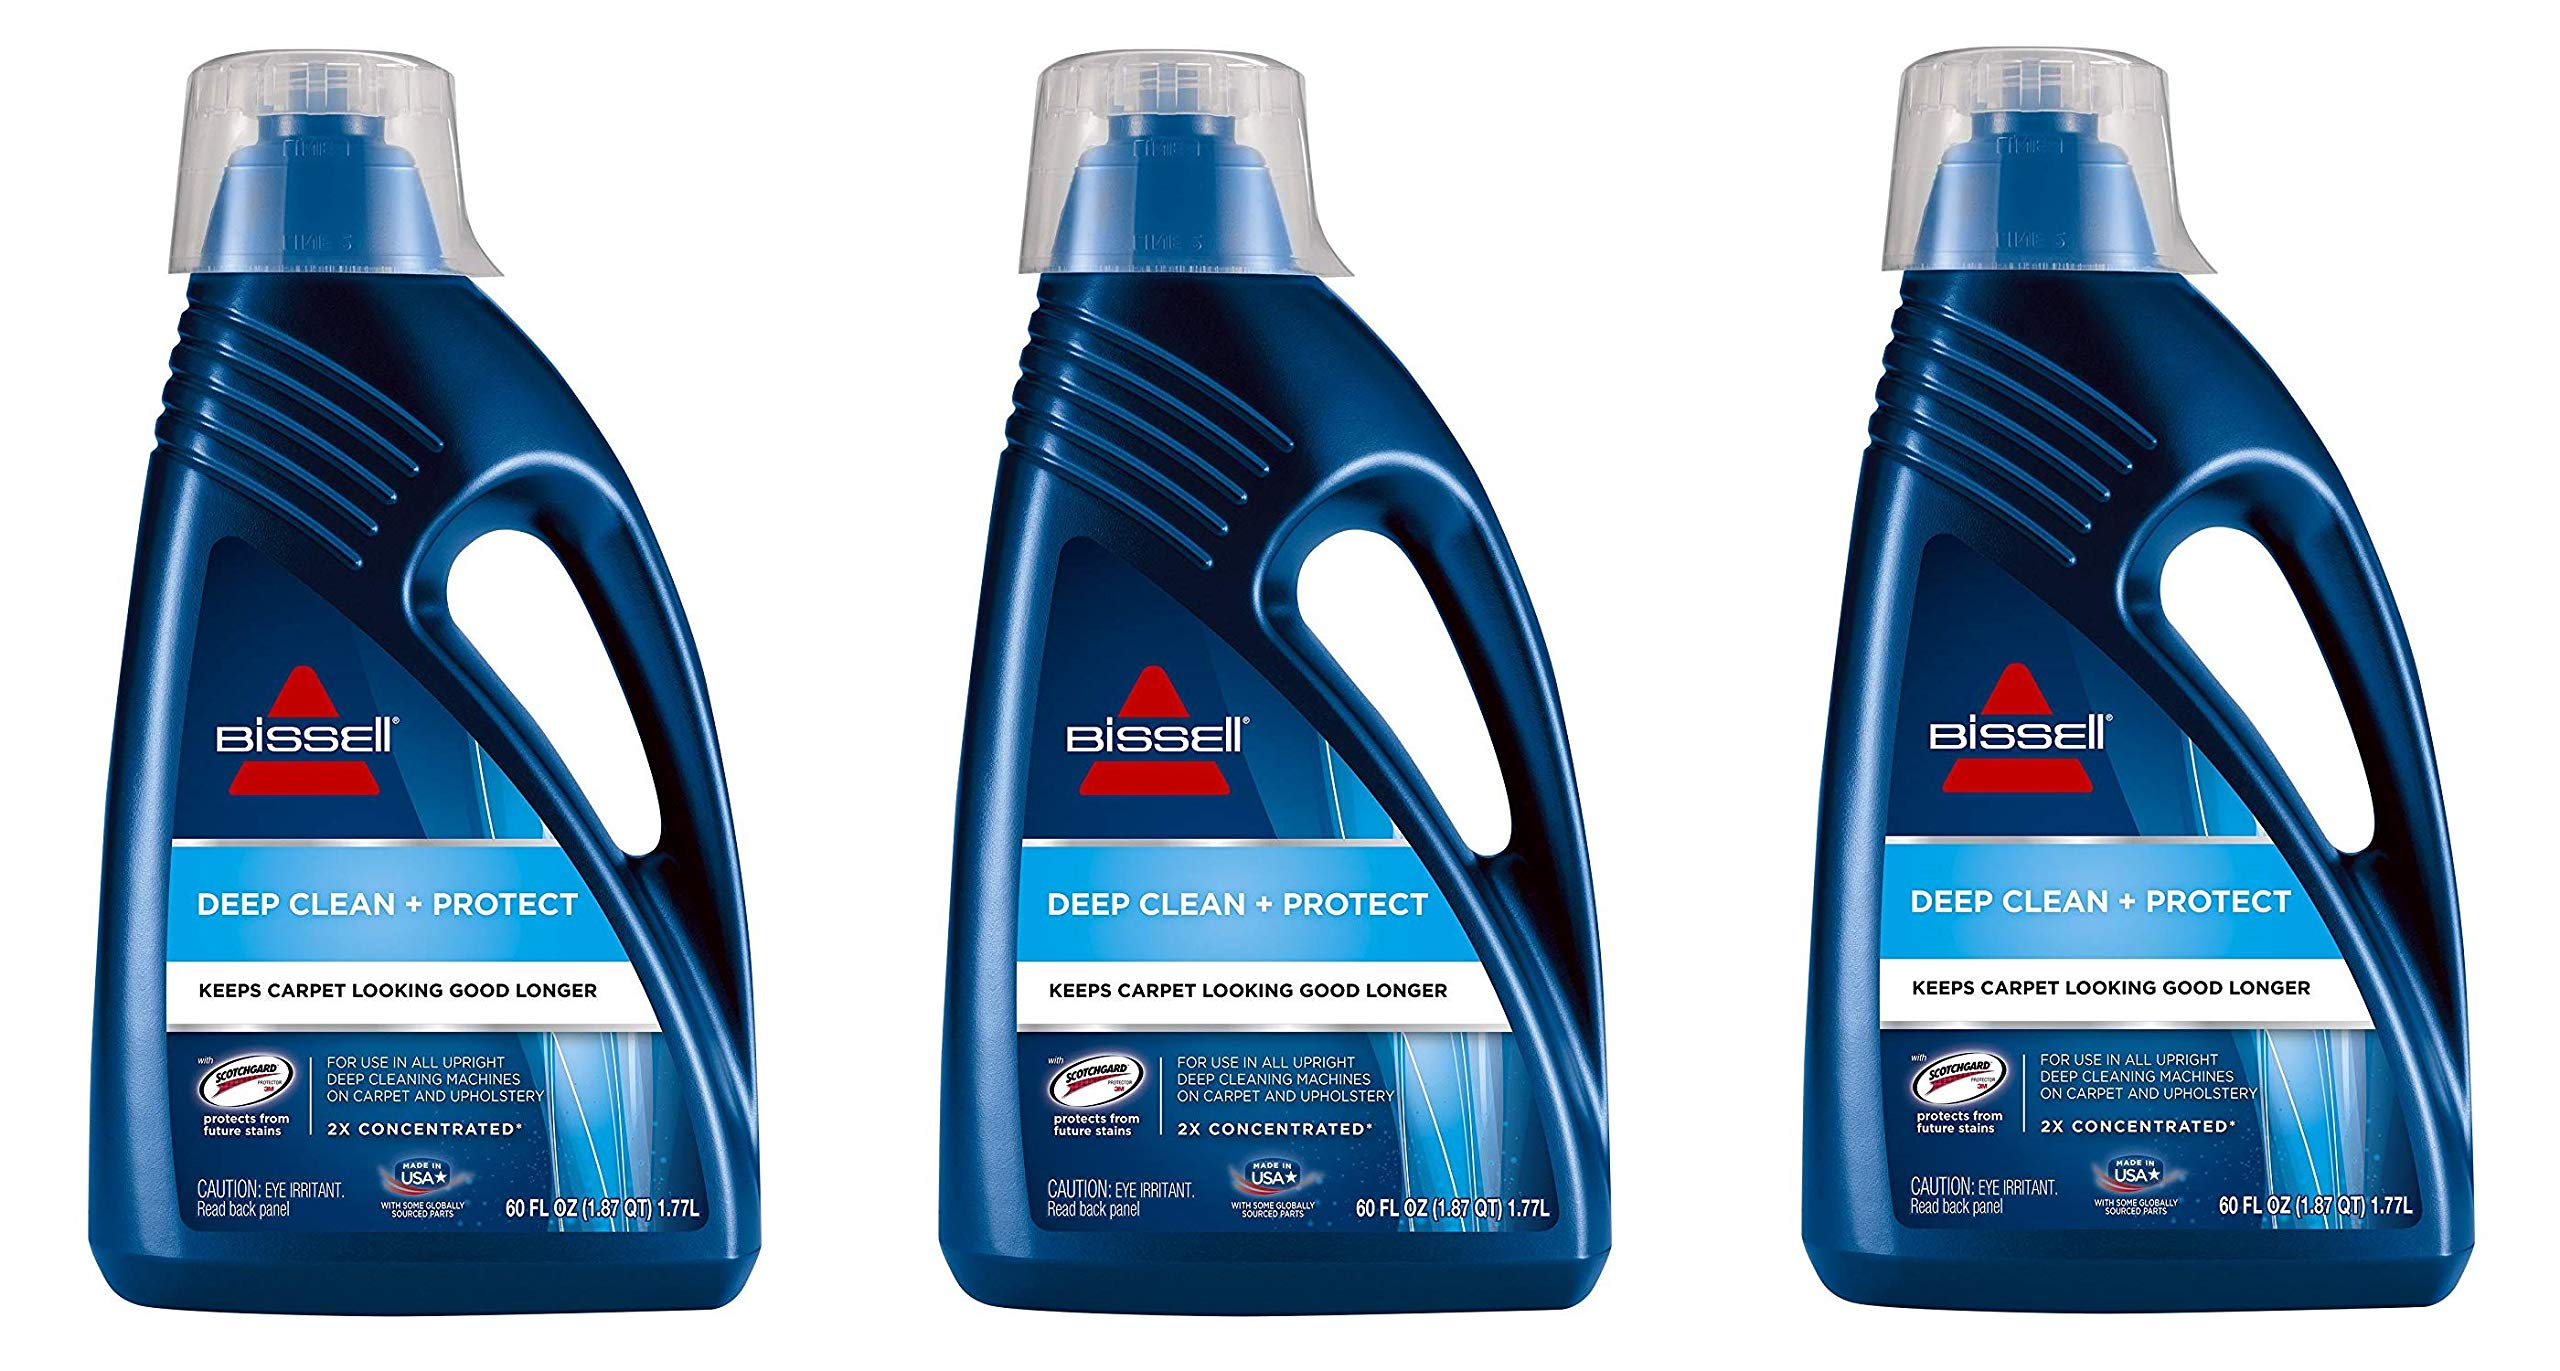 Bissell 62E5A 2X Concentrated Deep Clean & Protect Full Size Machine Formula, 60 Ounces (Тhree Pаck)